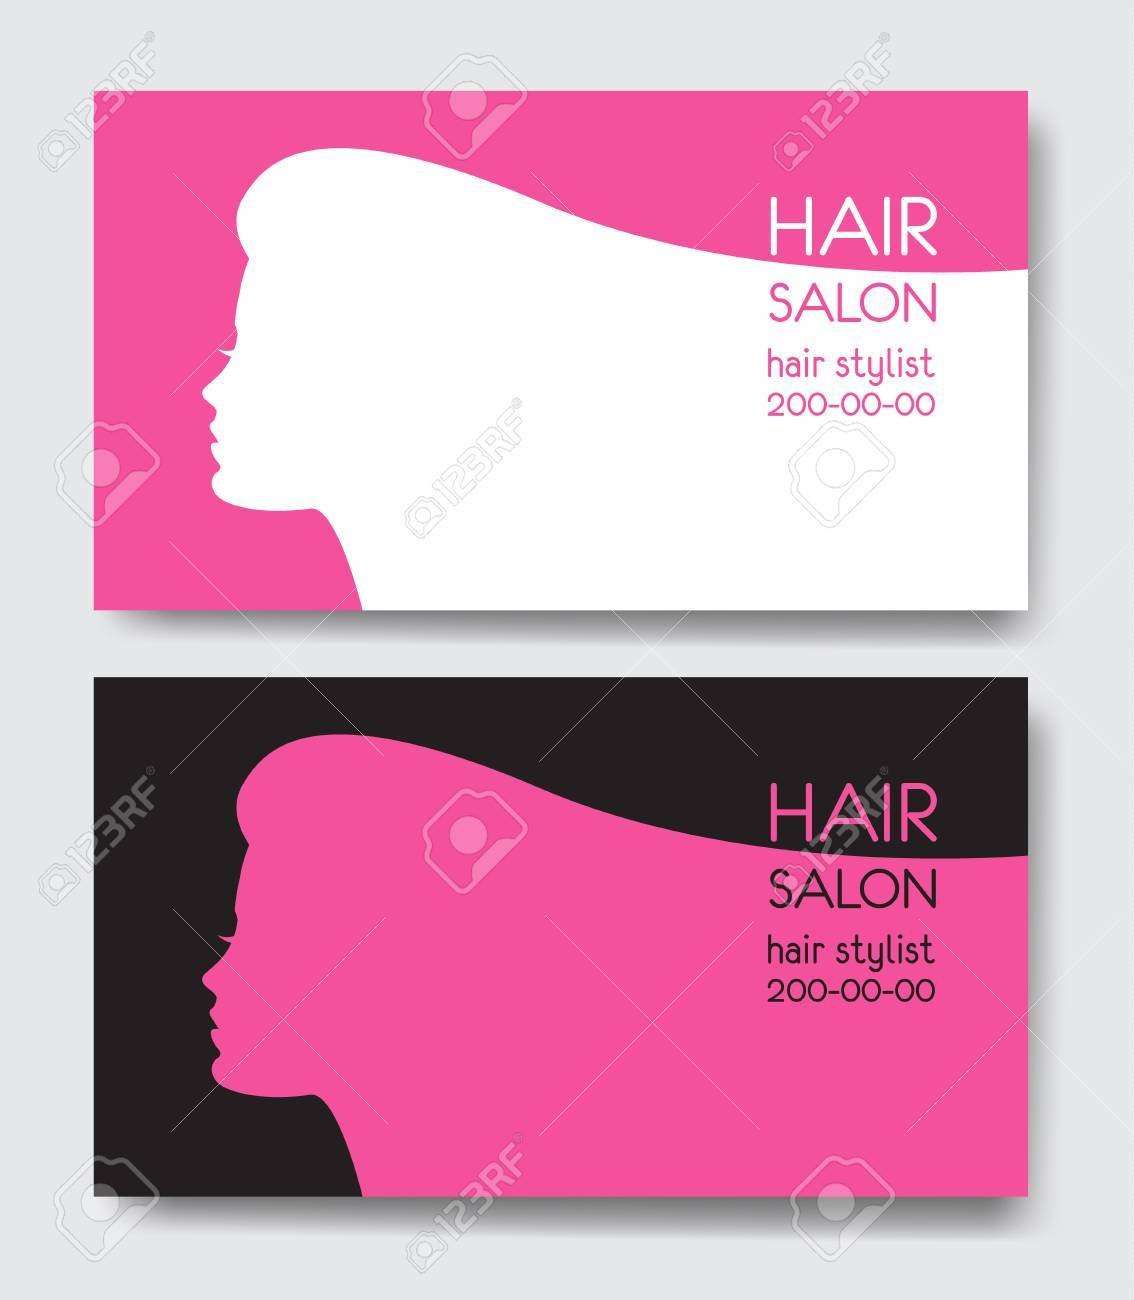 Hair salon business card templates royalty free cliparts vectors hair salon business card templates stock vector 76498015 accmission Choice Image